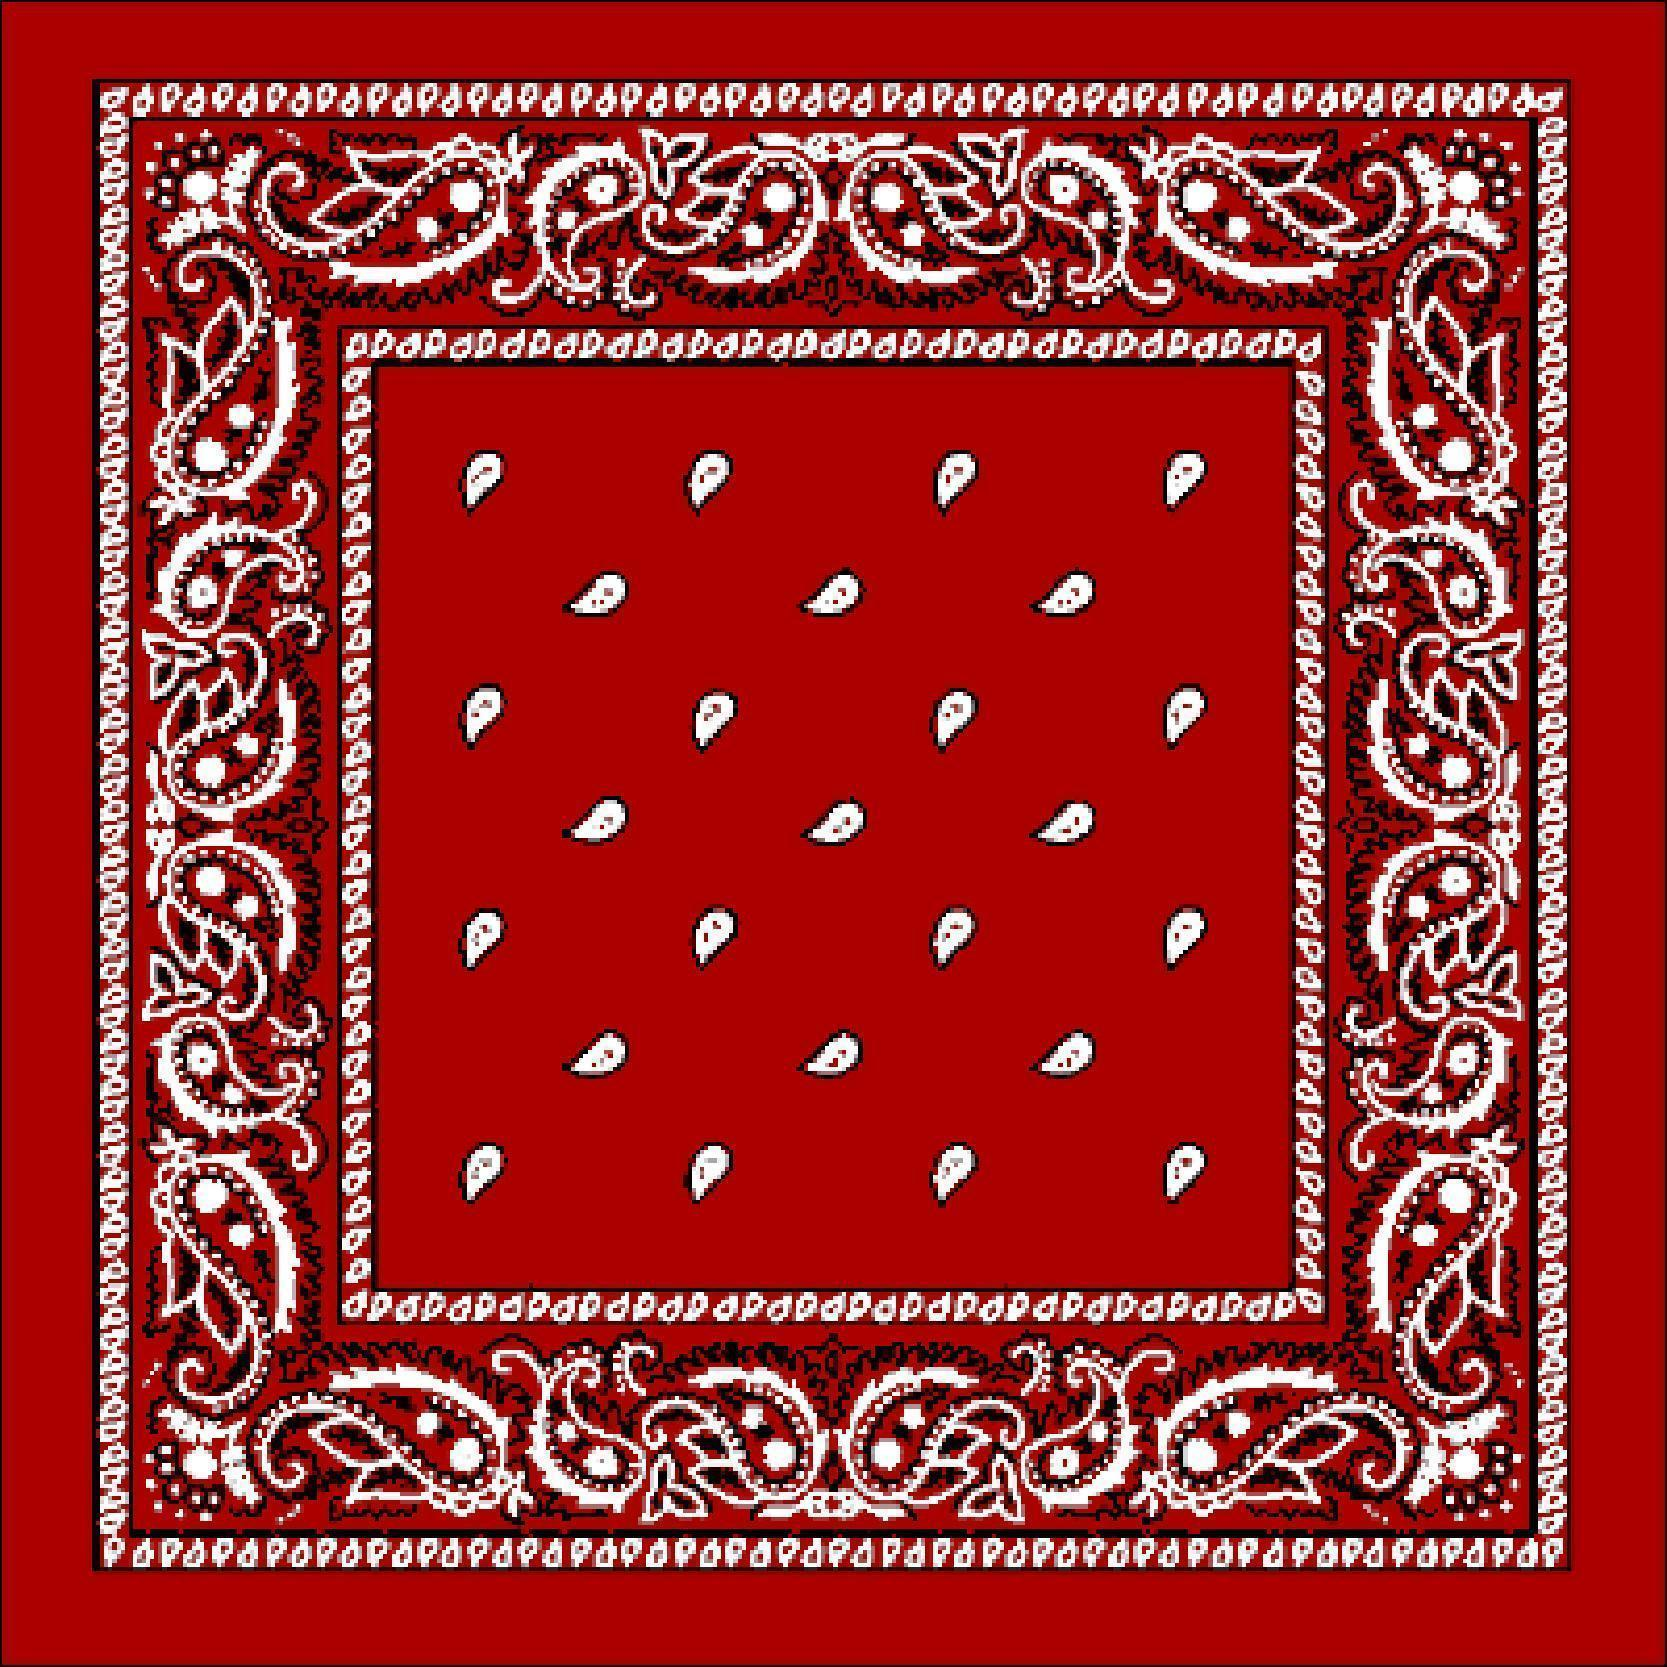 bandana desktop wallpaper - photo #20